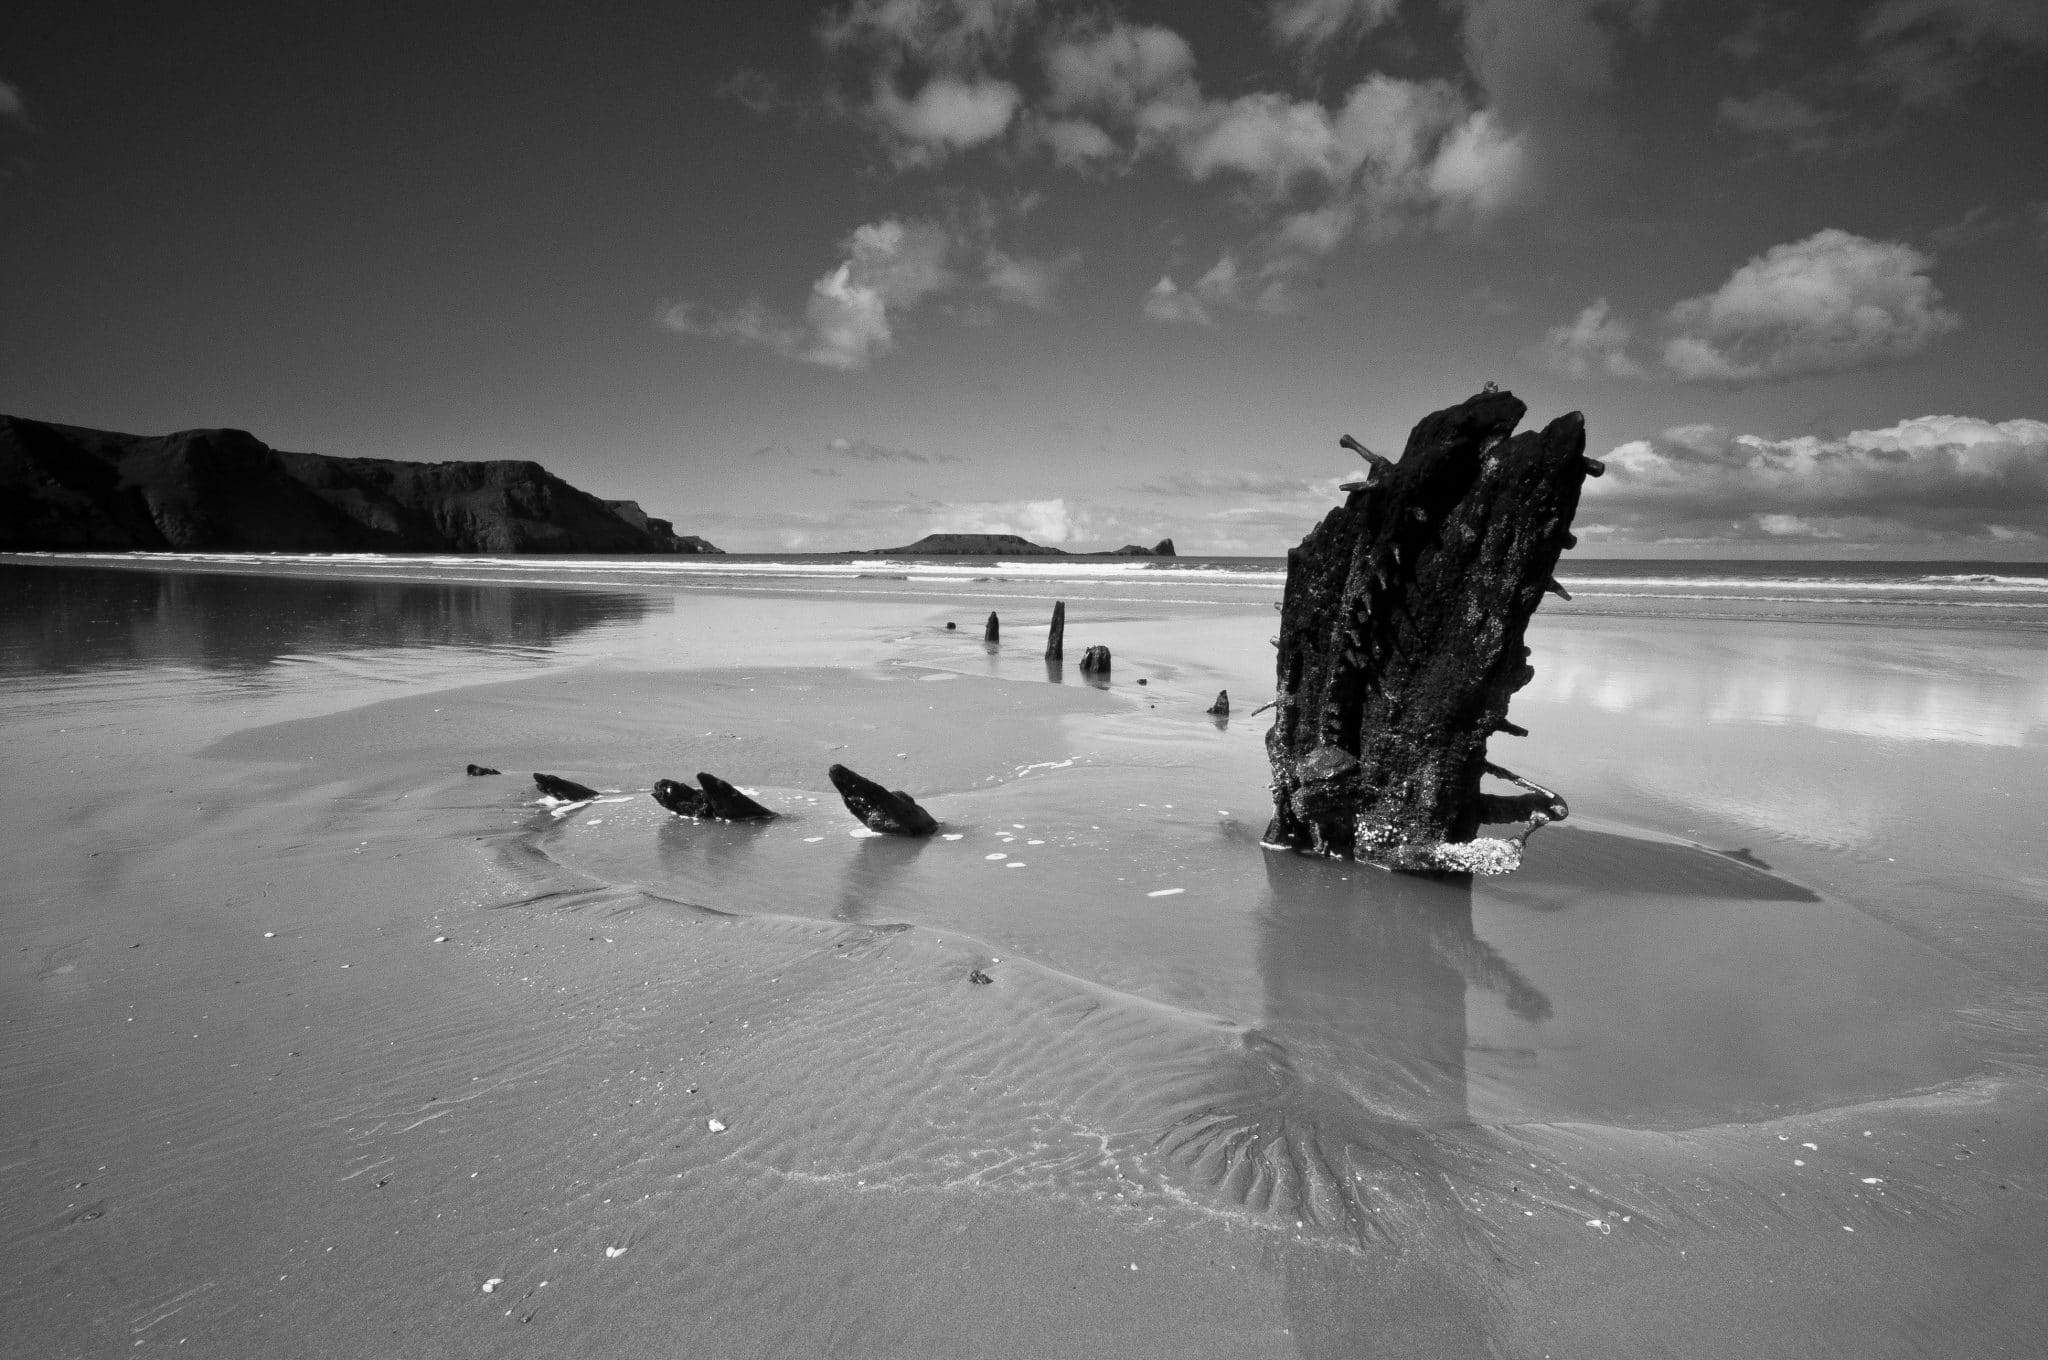 Black & White Photography | Lewis Fackrell Photography